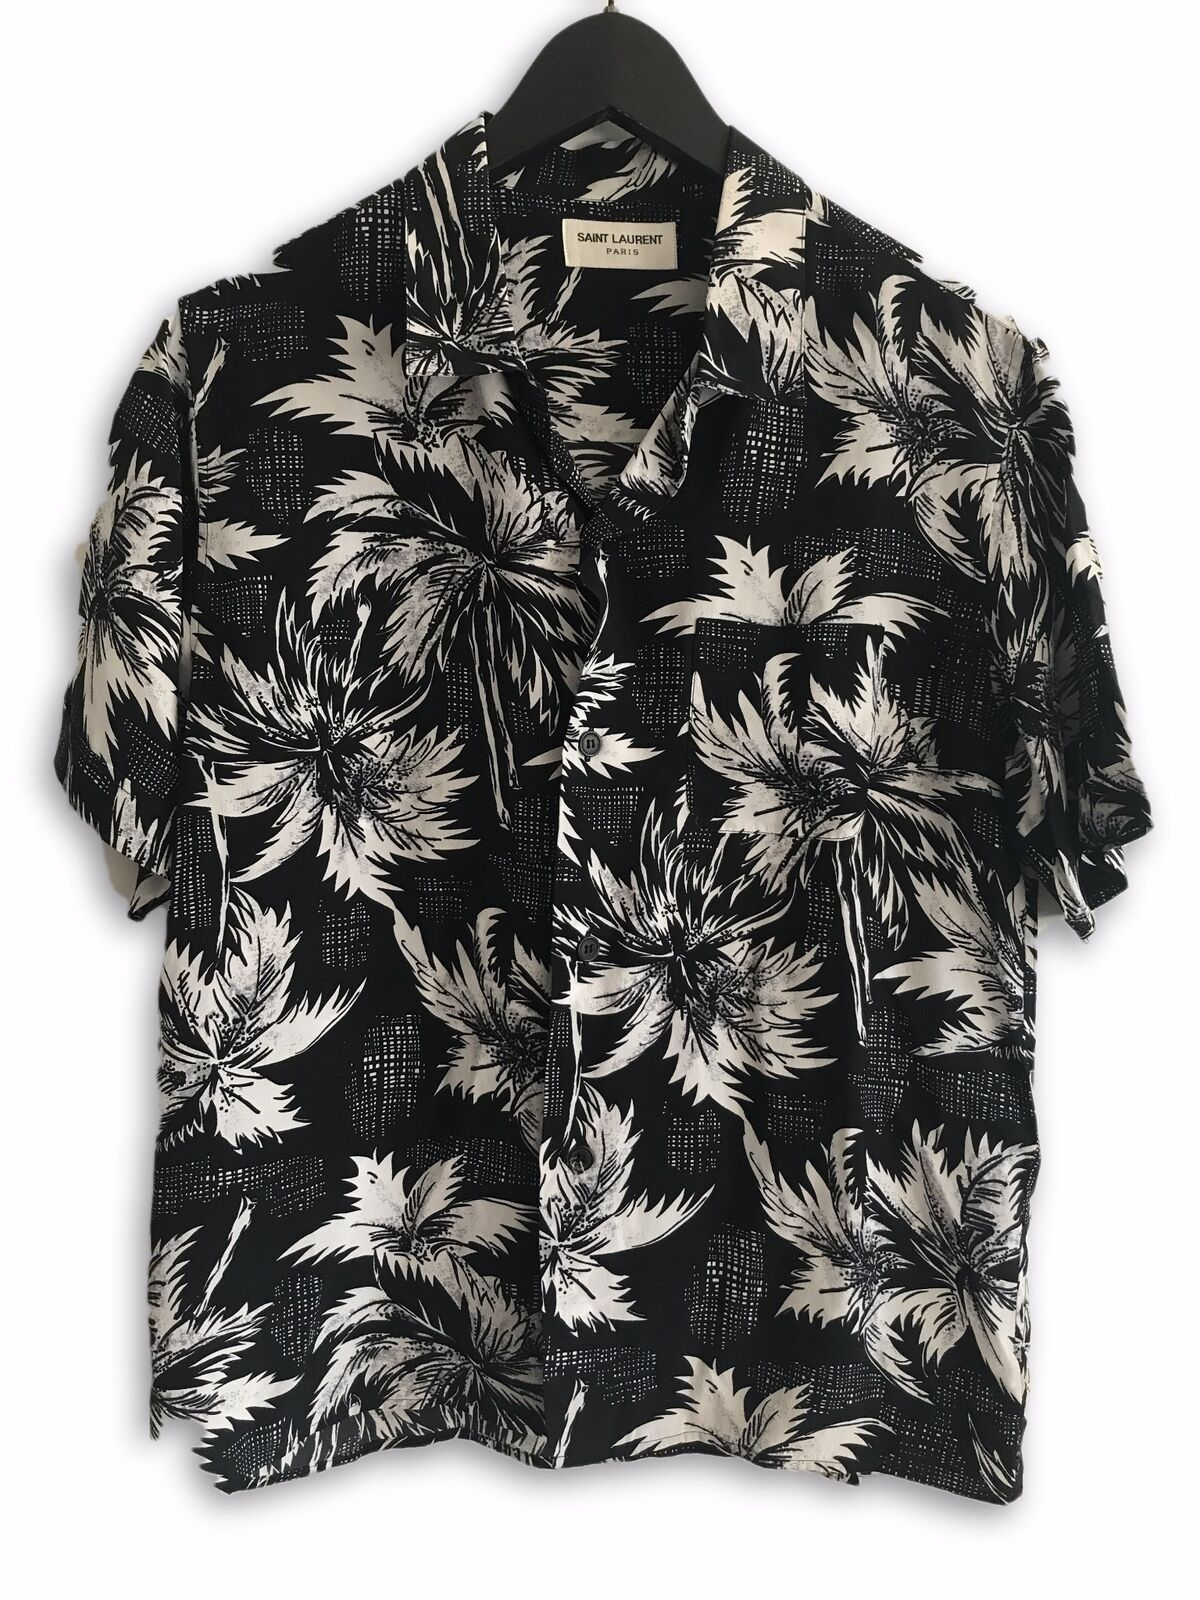 Saint Laurent Paris SS14 Black Hawaiian Shirt Size 37